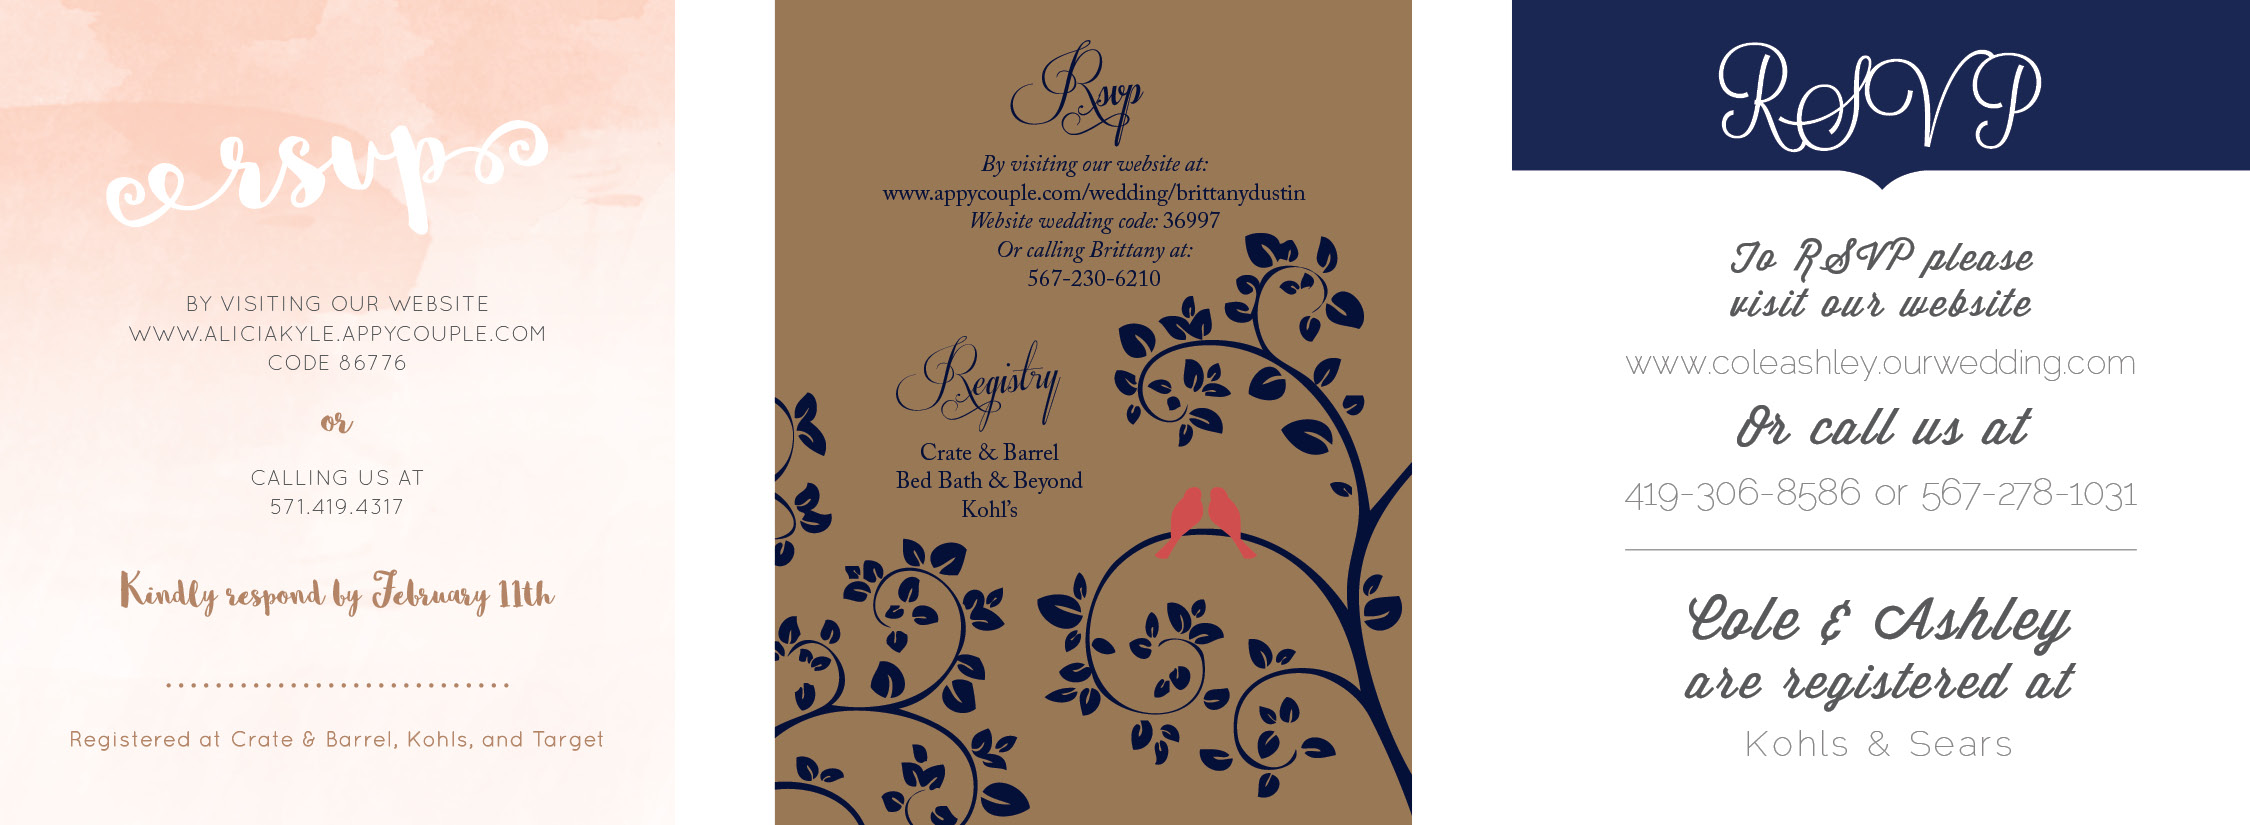 Examples of Wedding Invitations RSVP Cards